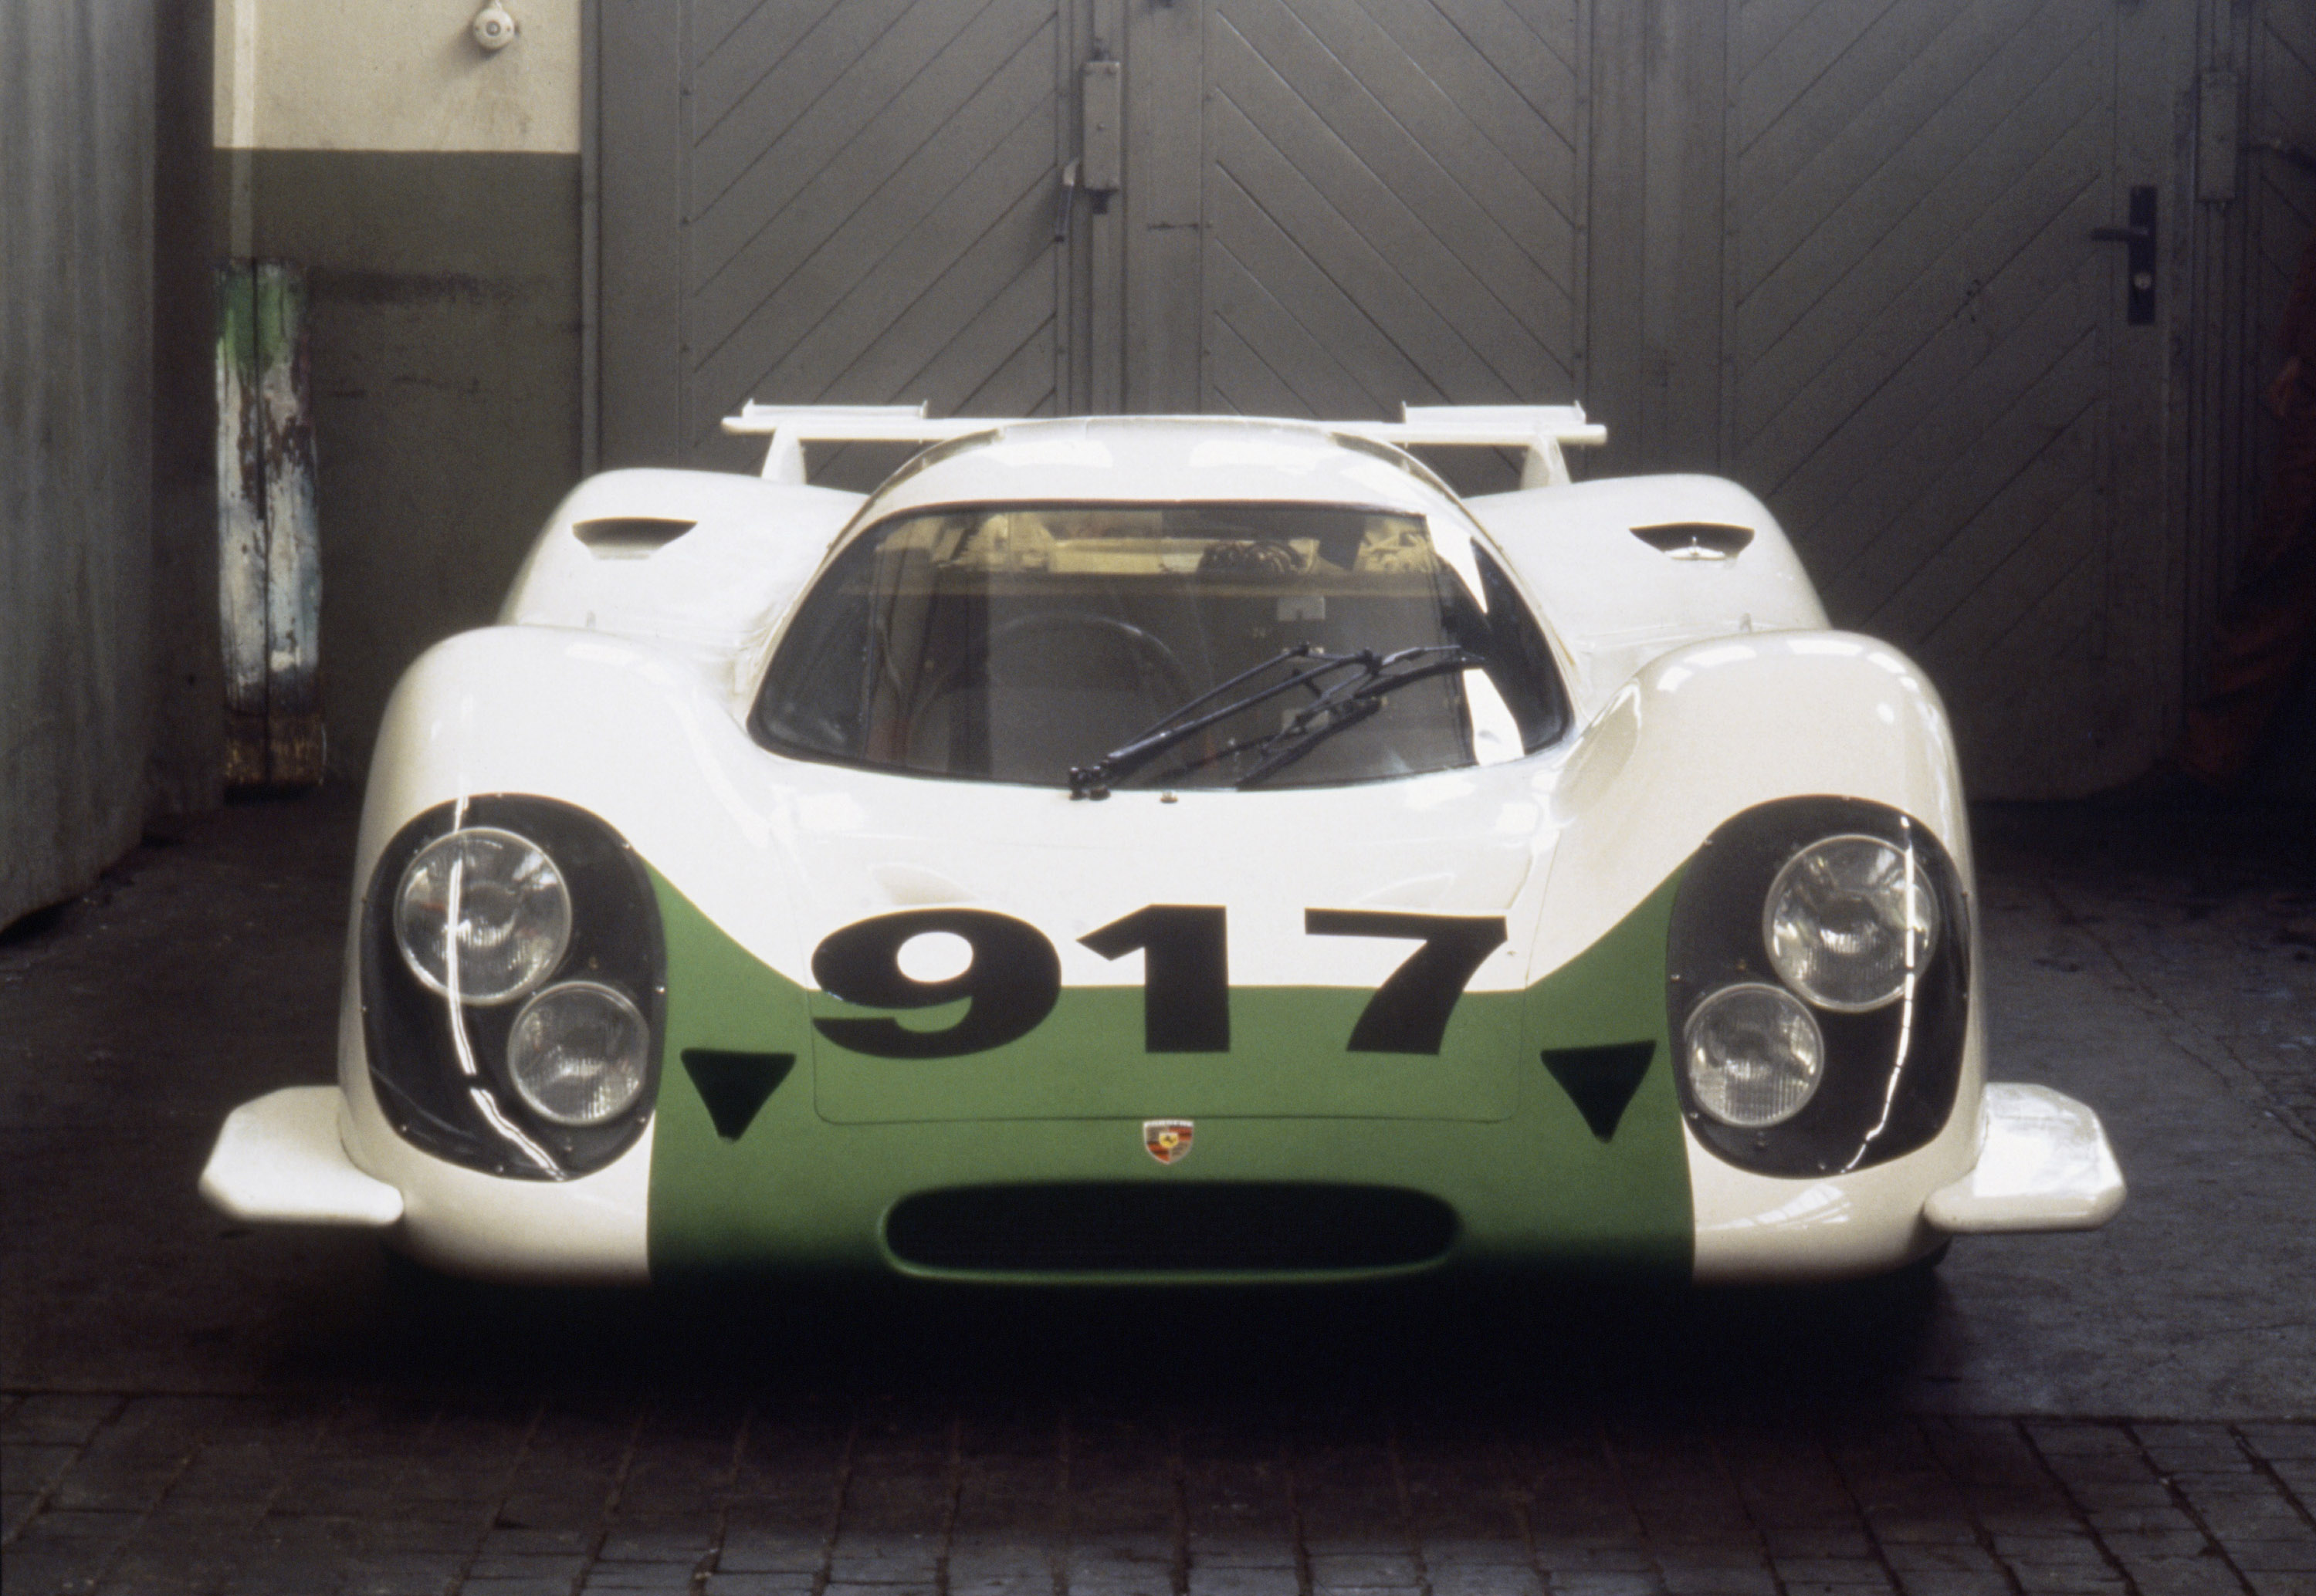 40 Years Anniversary Of The Porsche 917 Greatest Racing